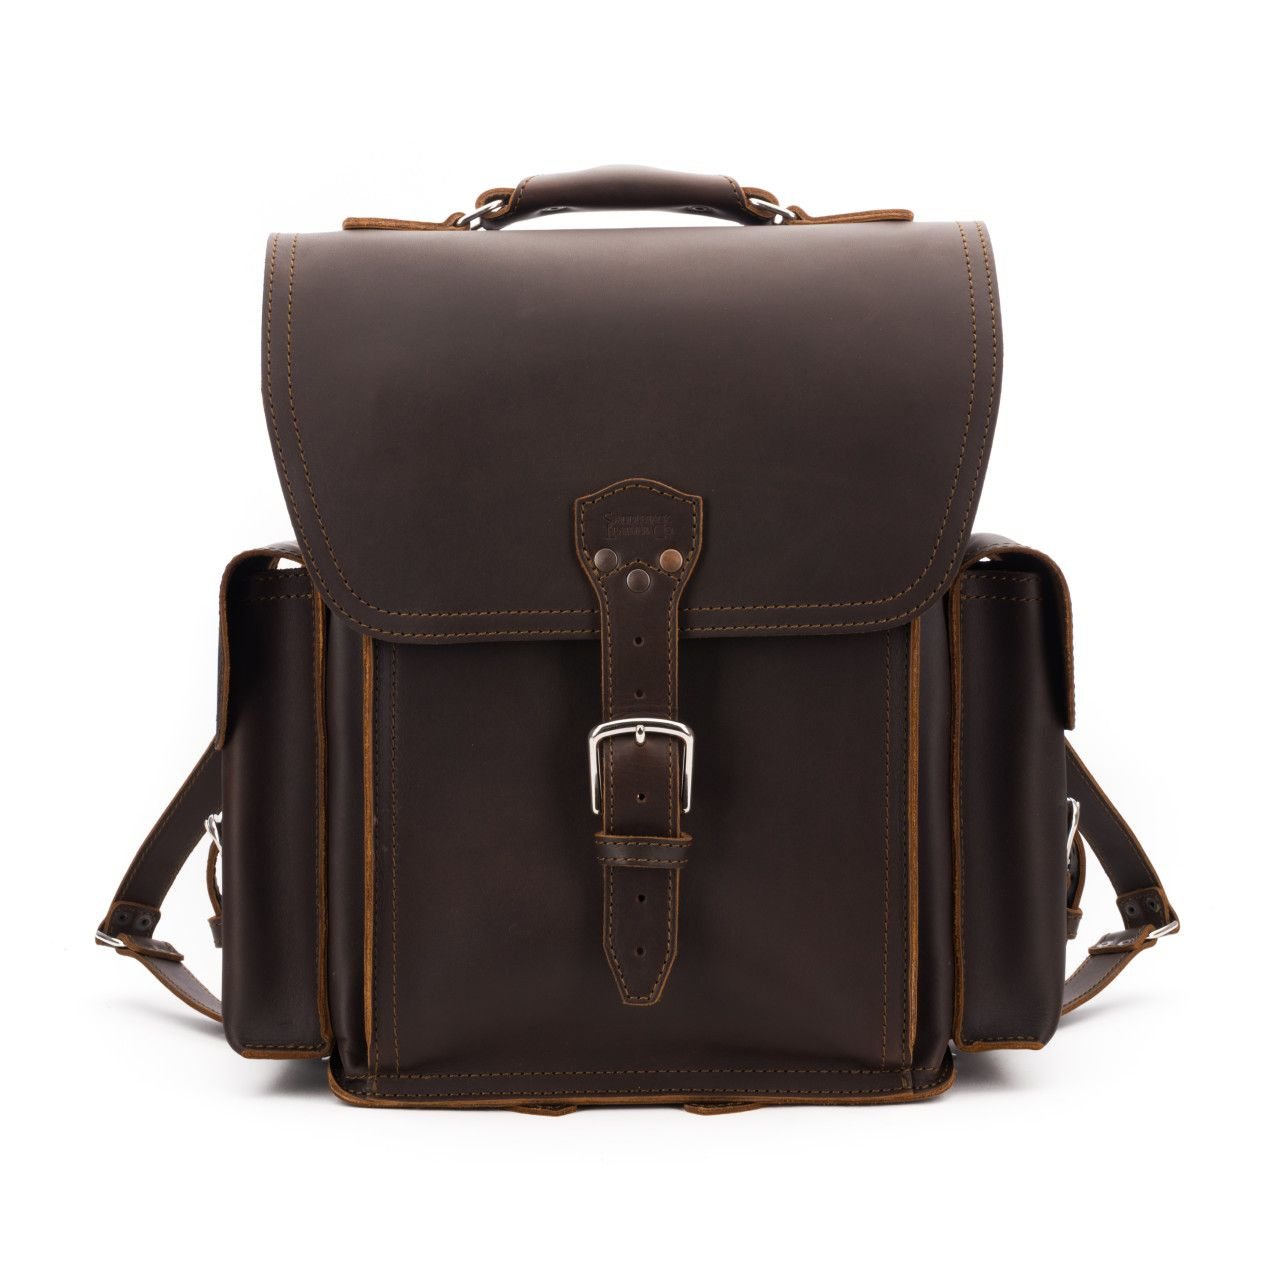 squared leather backpack in dark coffee brown leather